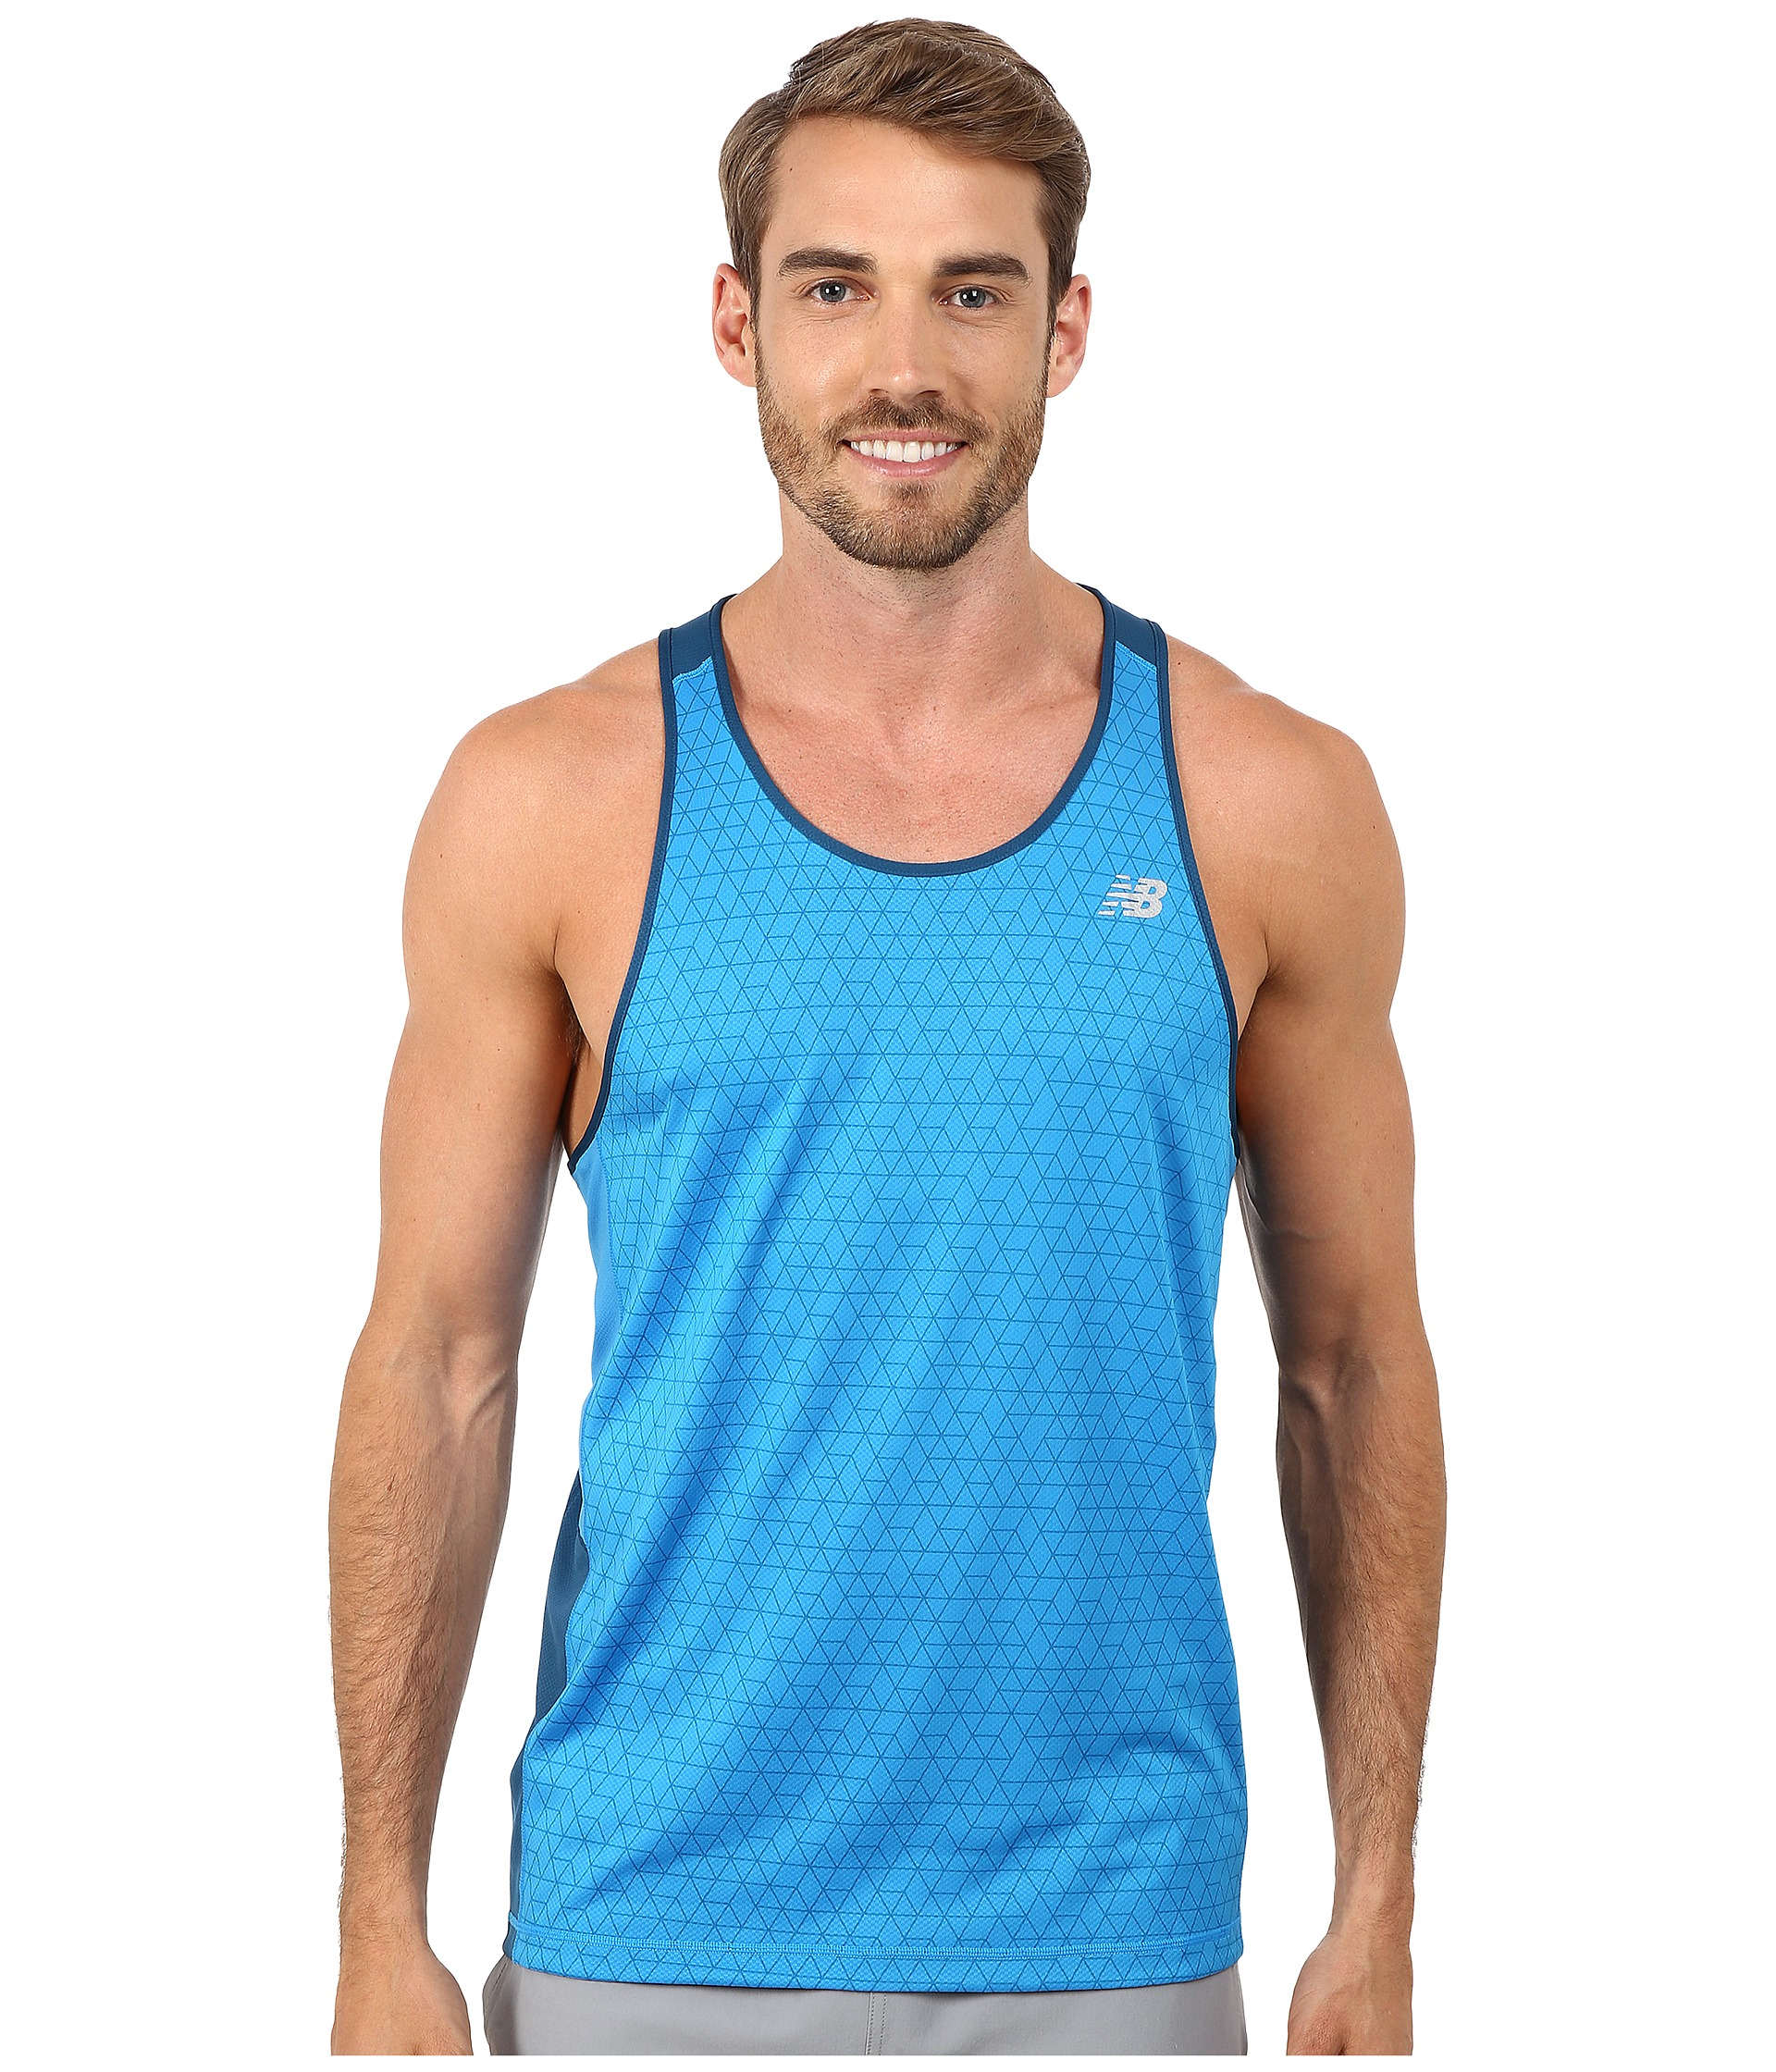 a0a68eef60b0 Lyst - New Balance Nb Ice Singlet in Blue for Men